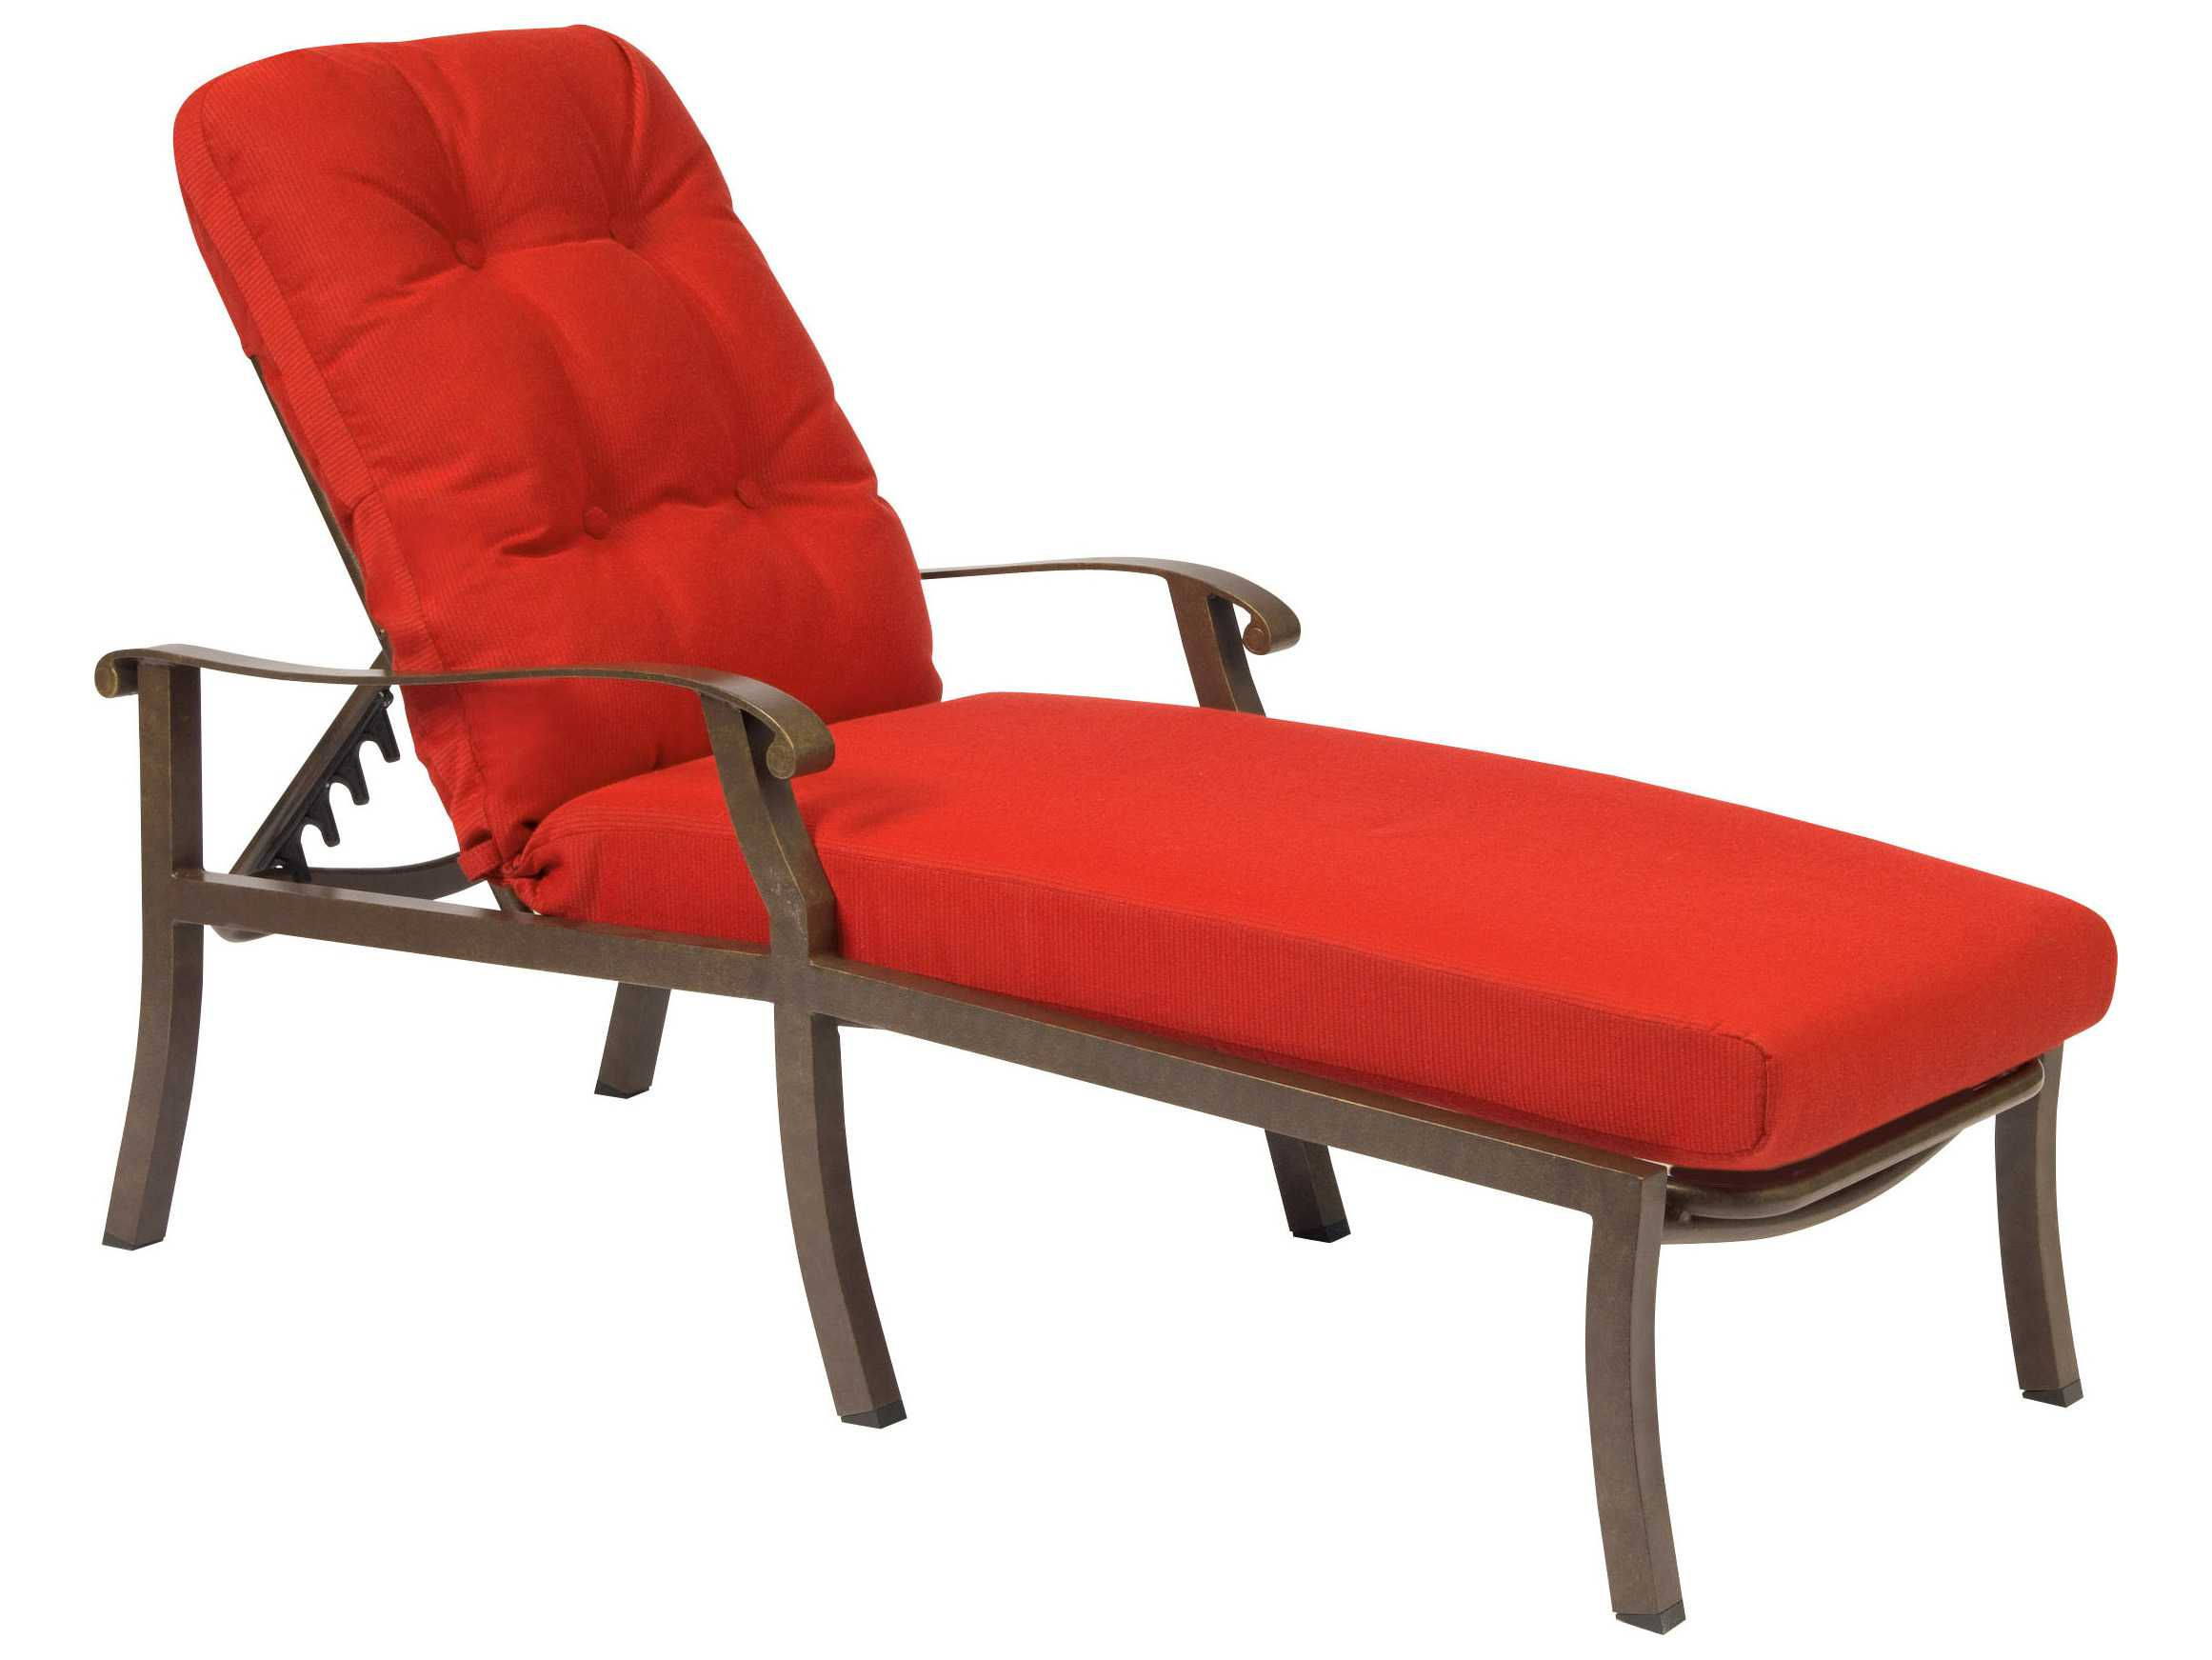 Woodard cortland cushion aluminum adjustable chaise lounge for Chaise cushion sale